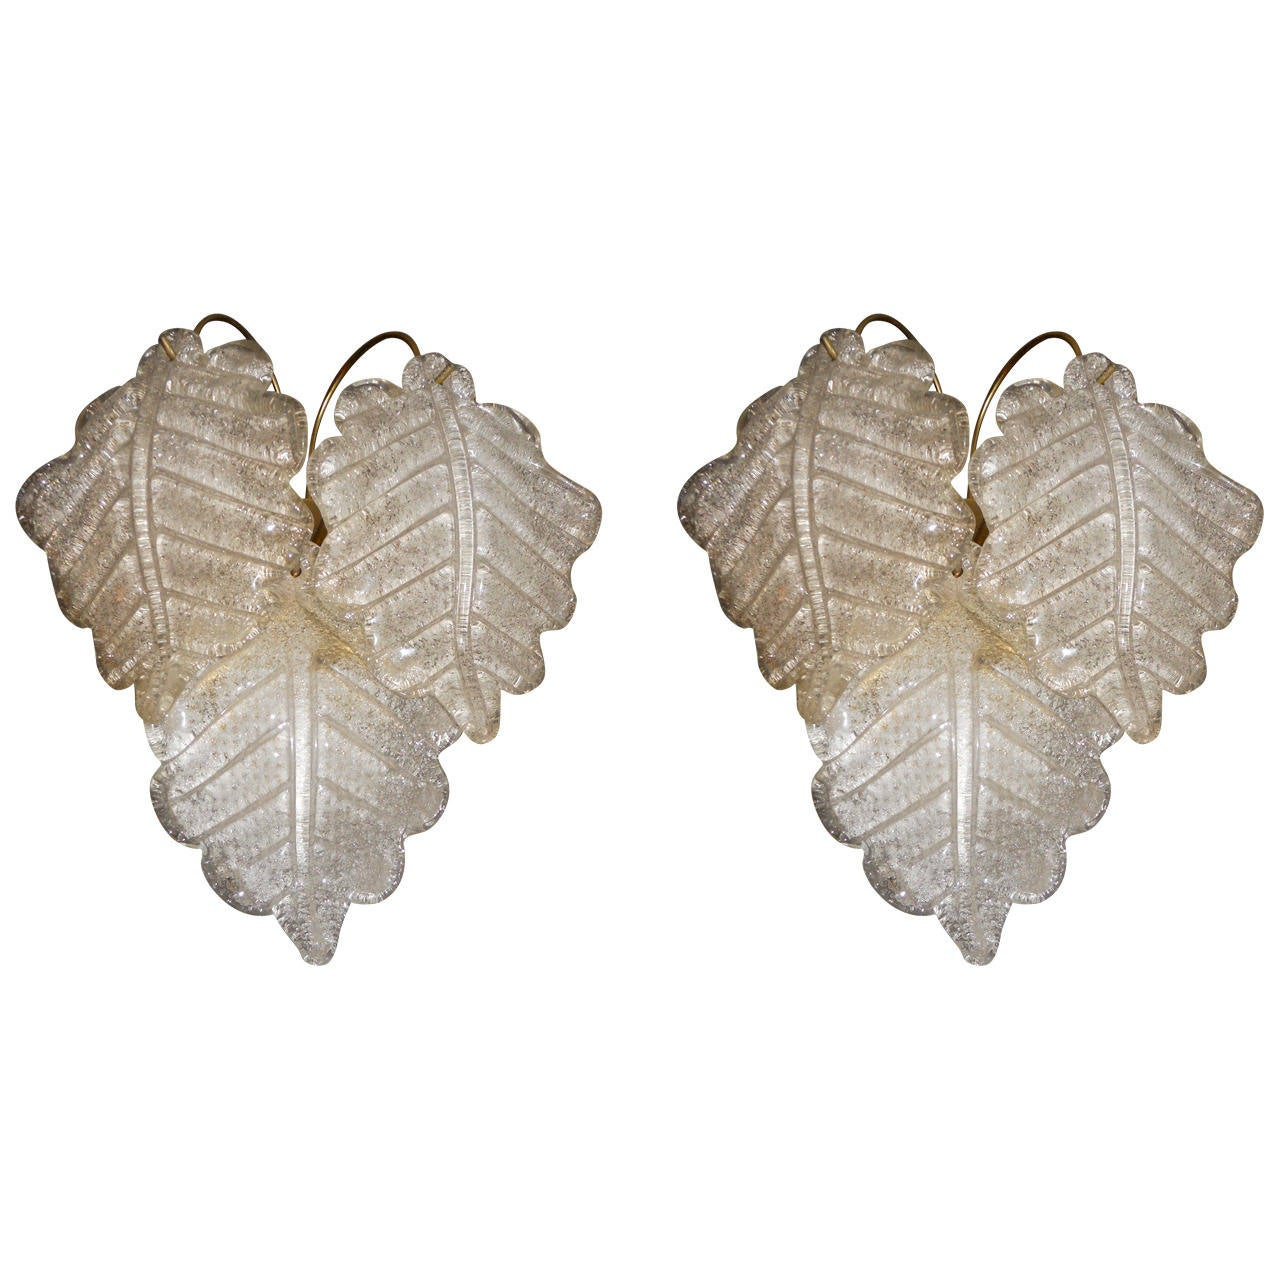 Charming Pair of Frosted Leaf Wall Sconces at 1stdibs